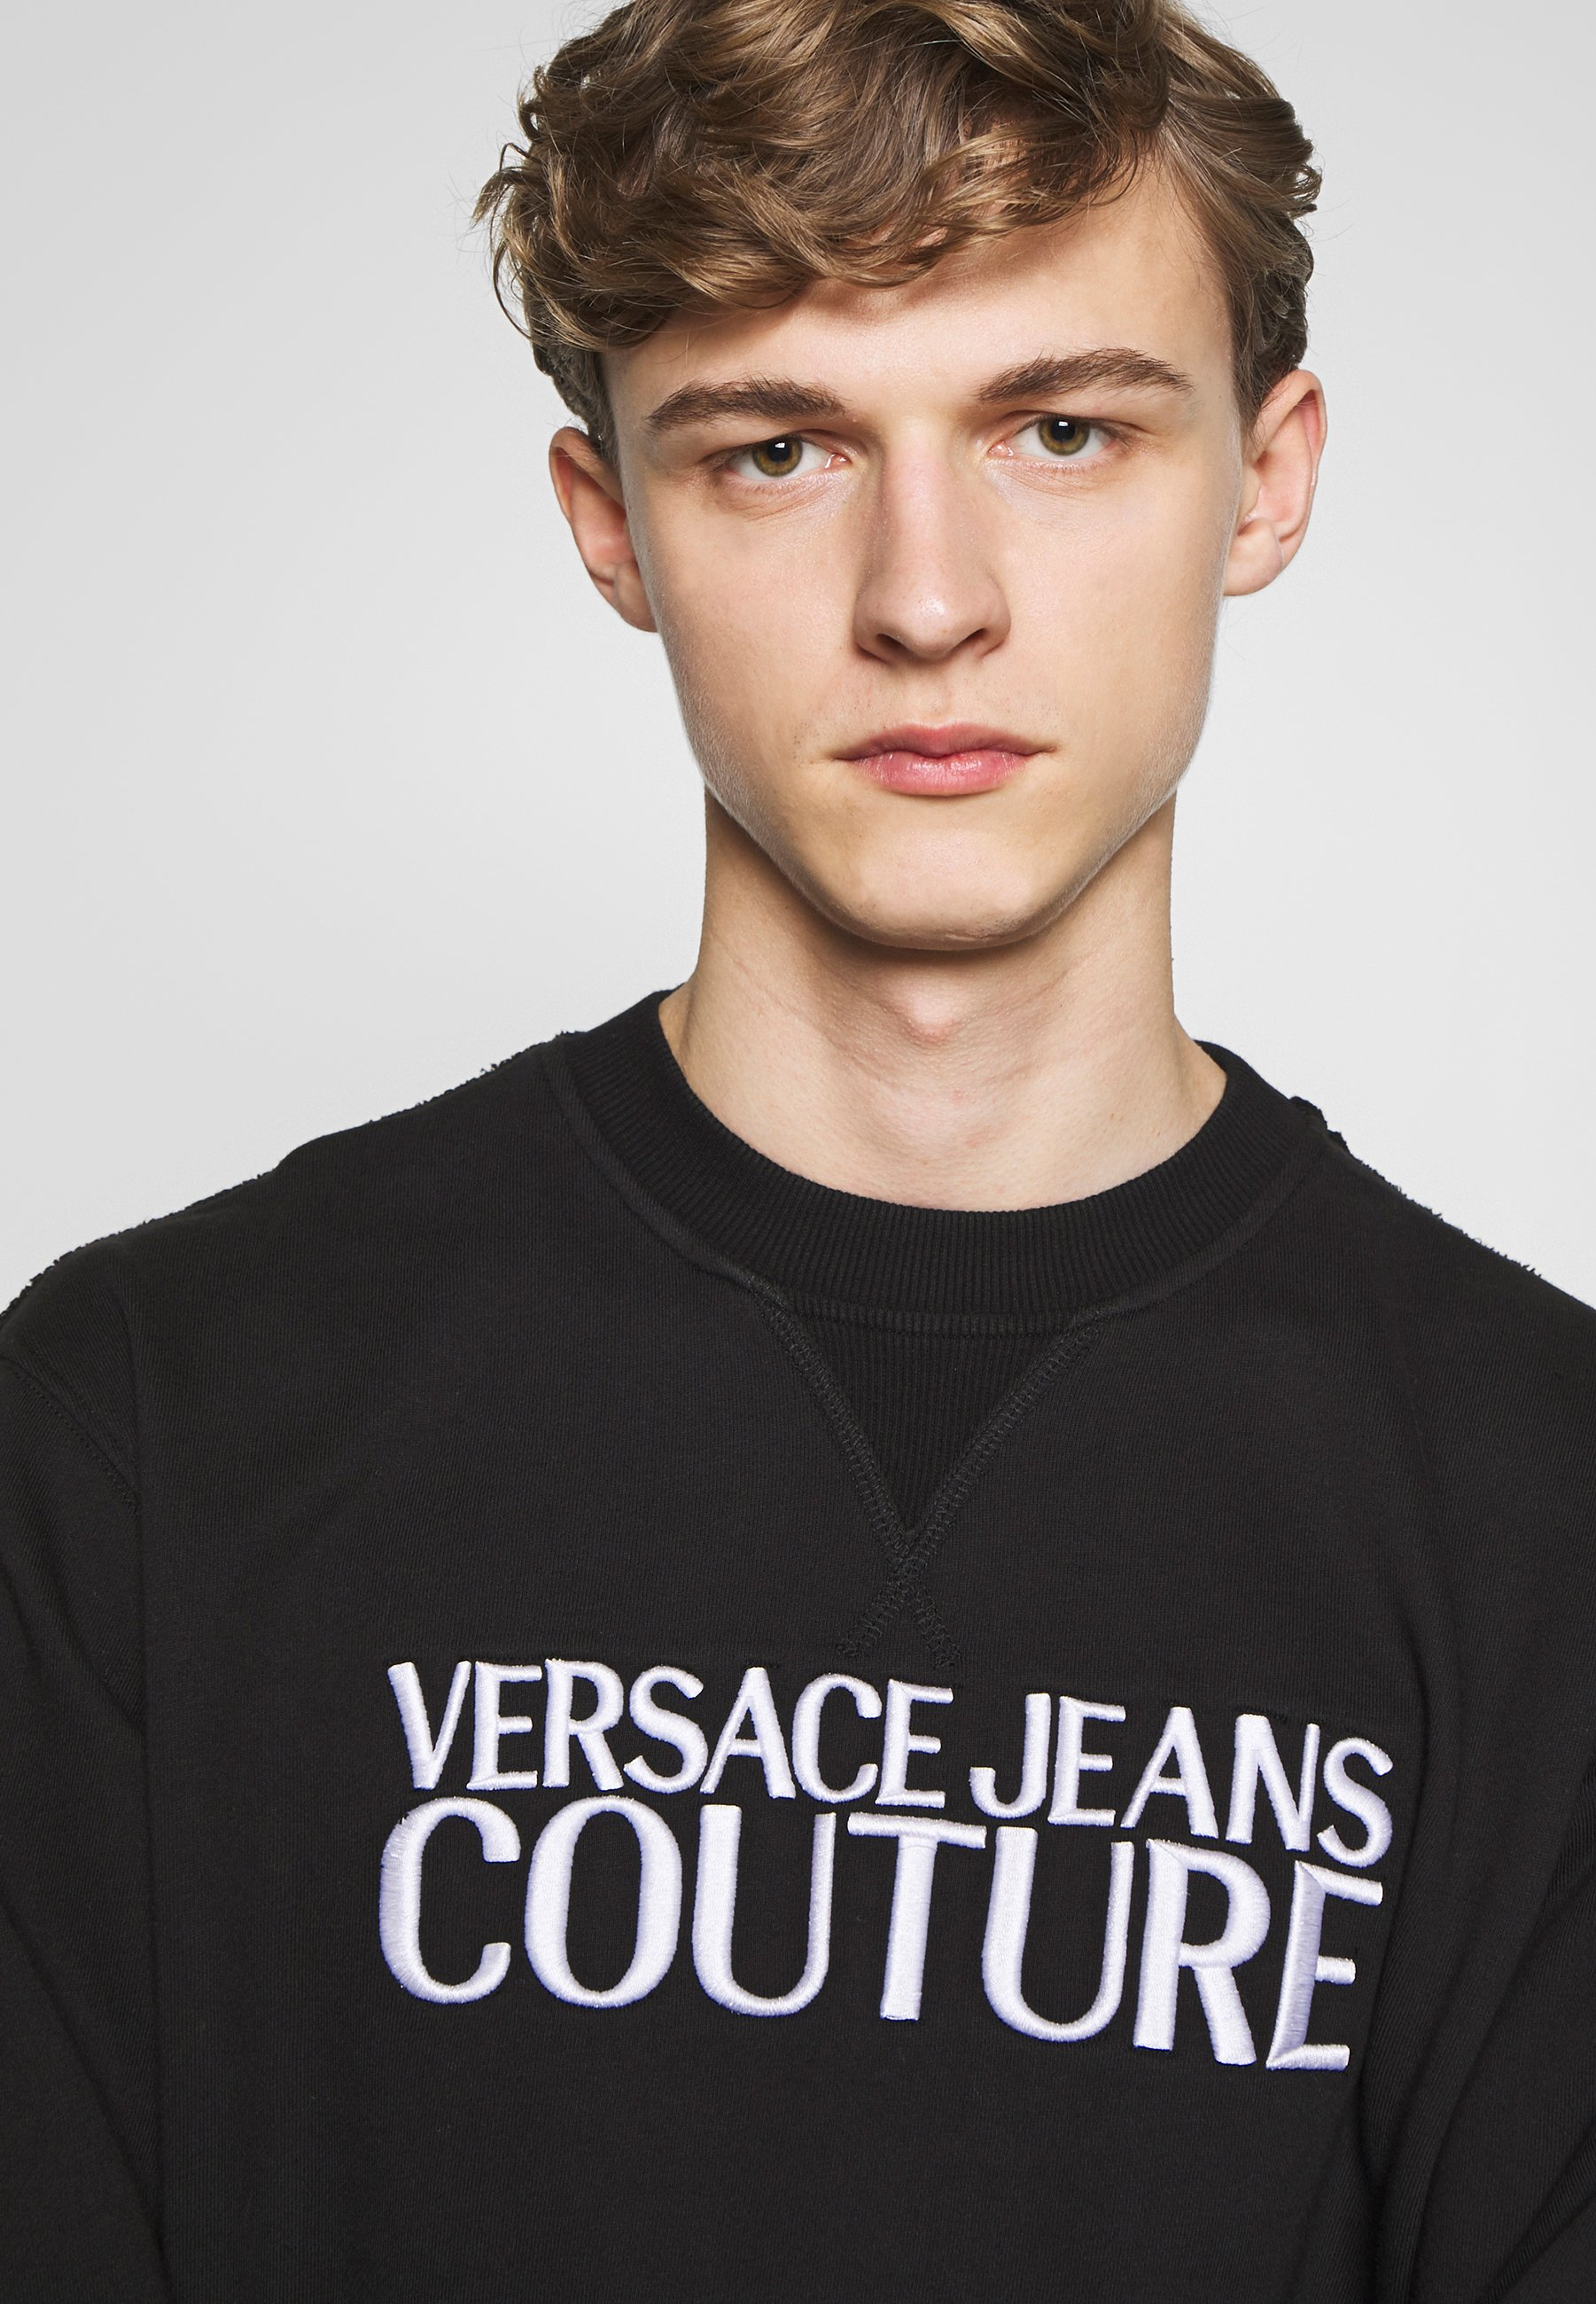 Versace Jeans Couture Crew Basic Logo Embroidered - Sweatshirt Black